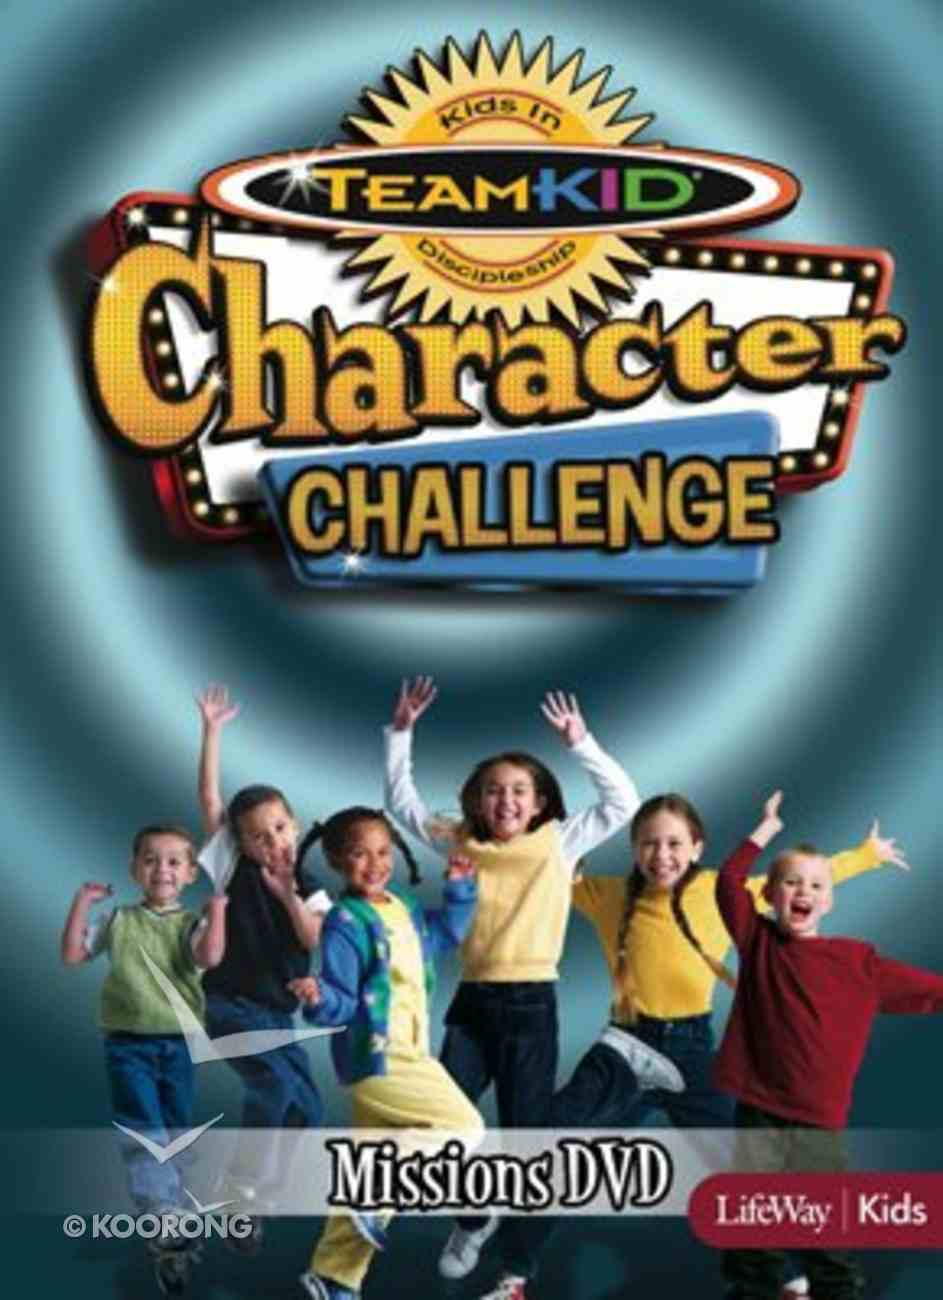 Character Challenge Mission (Teamkid Series) DVD